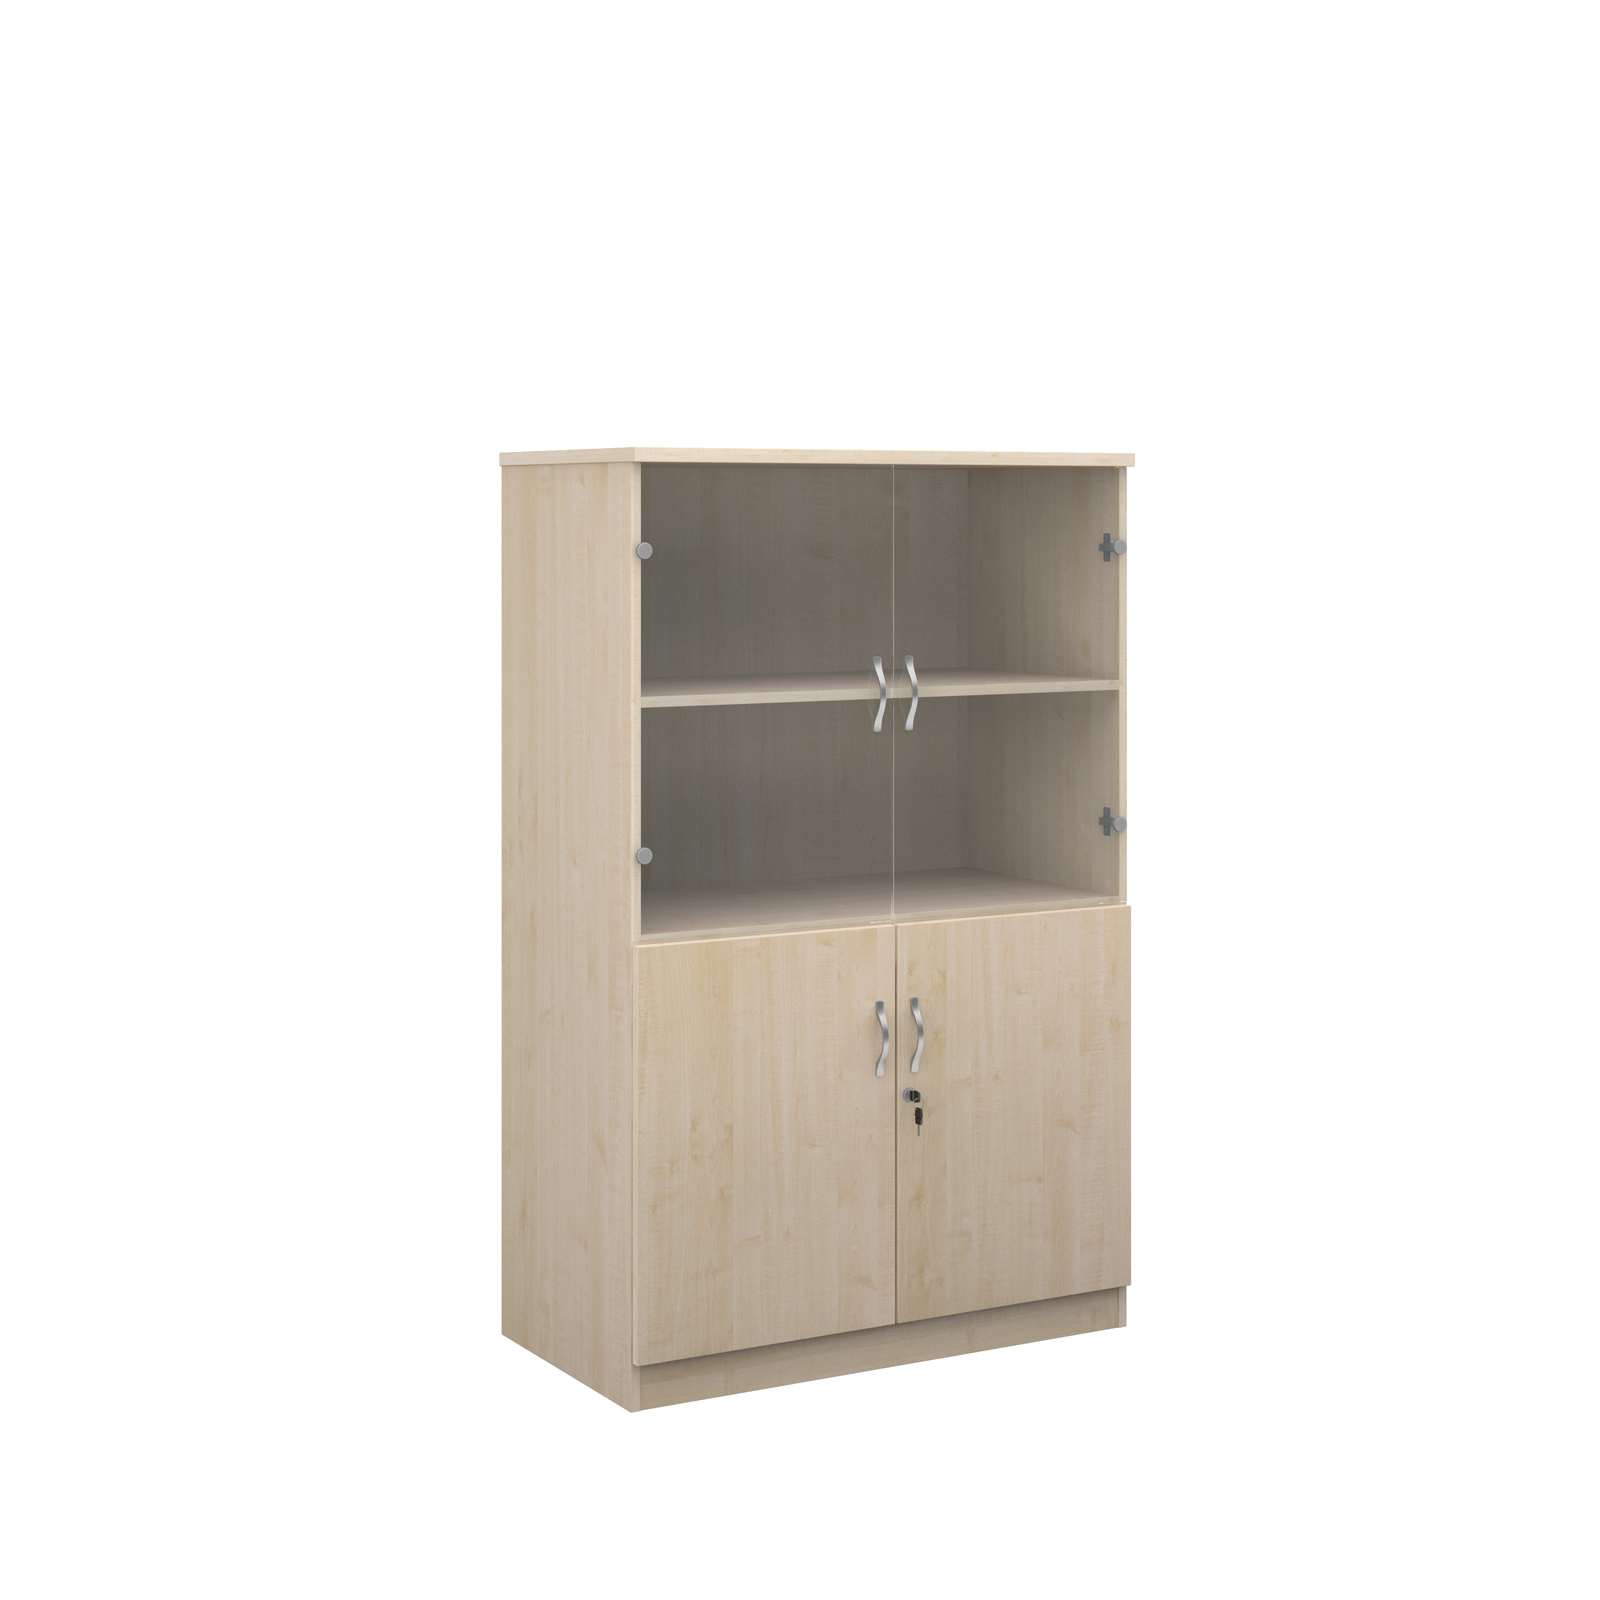 1600mm high deluxe combination bookcase with wood and glass doors